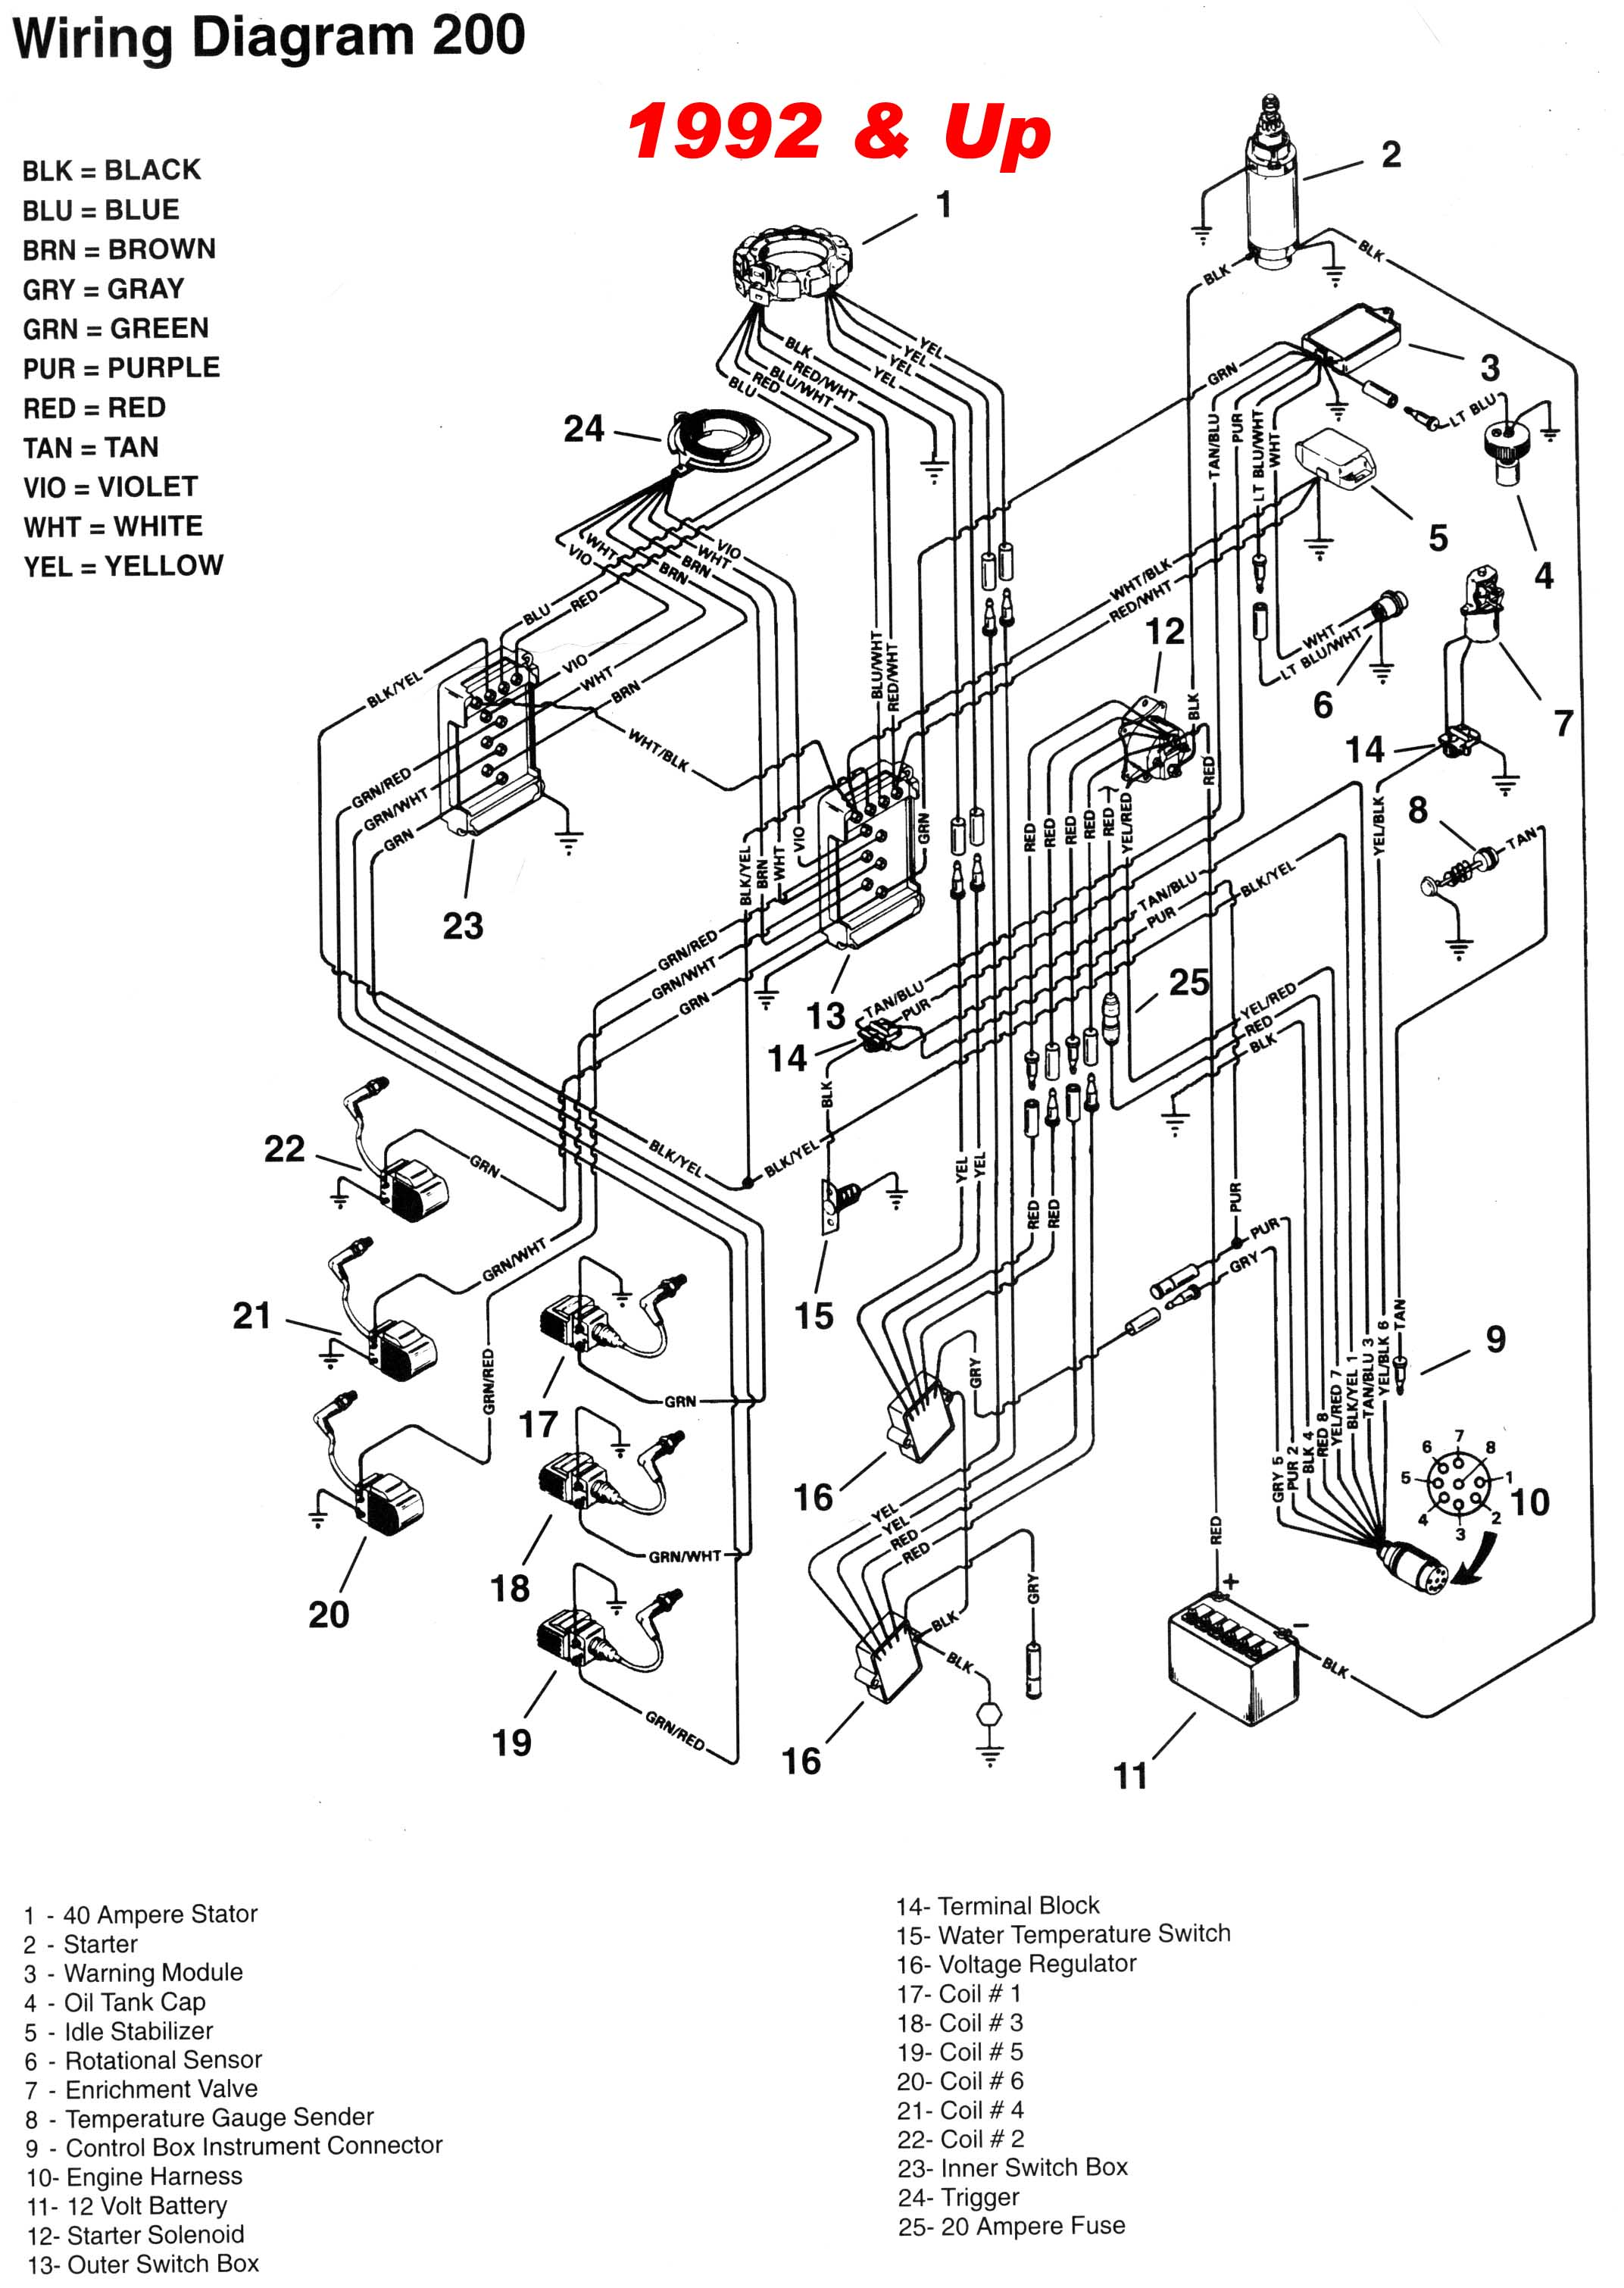 1950 ford dash wiring diagram 1950 printable wiring diagram 1950 ford dash wiring diagram 1950 auto wiring diagram schematic on 1950 ford dash wiring